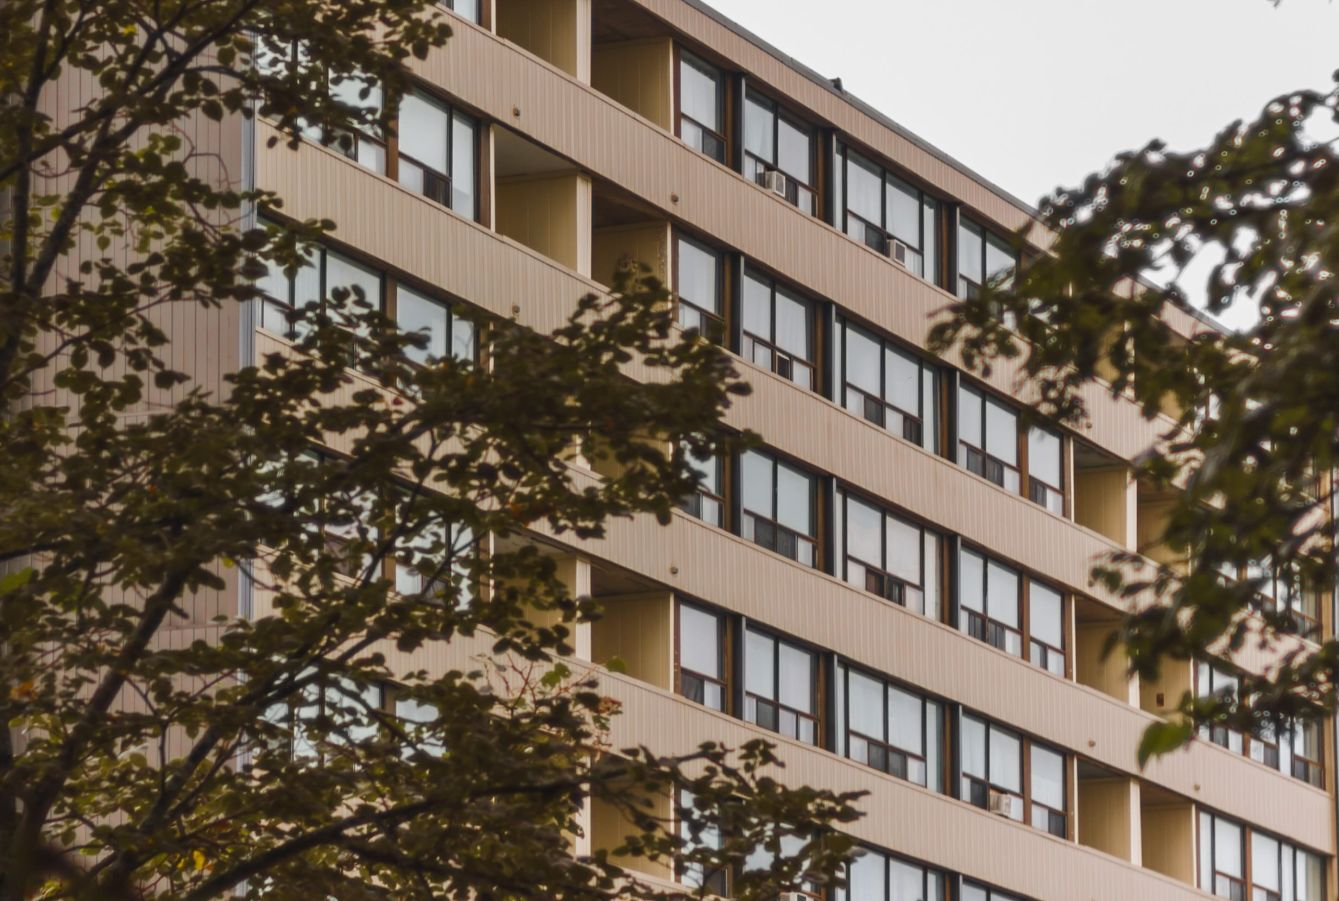 Click thumbnail to see details about photo - Prince Edward Square Apartments Through Trees Photograph